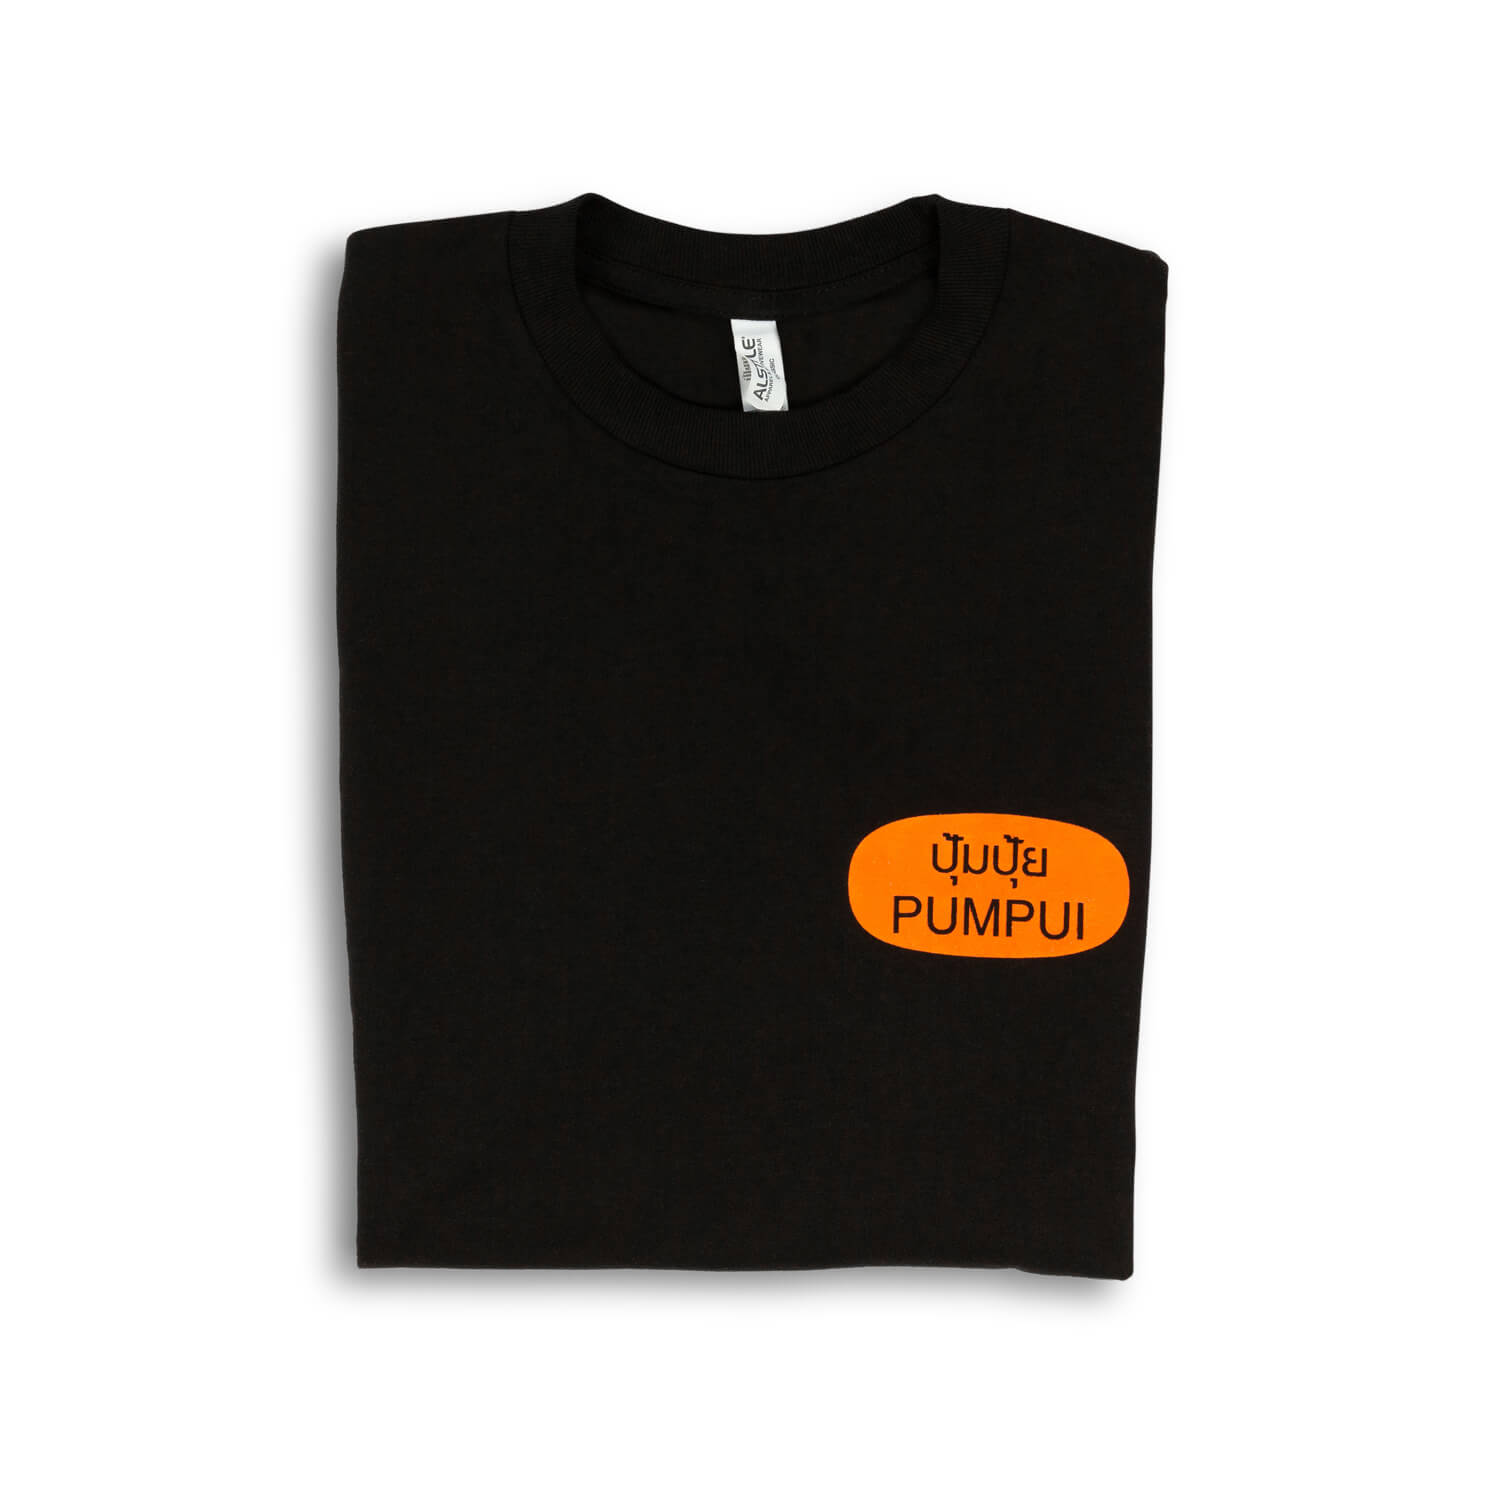 Pumpui T-Shirt (Black/Orange)